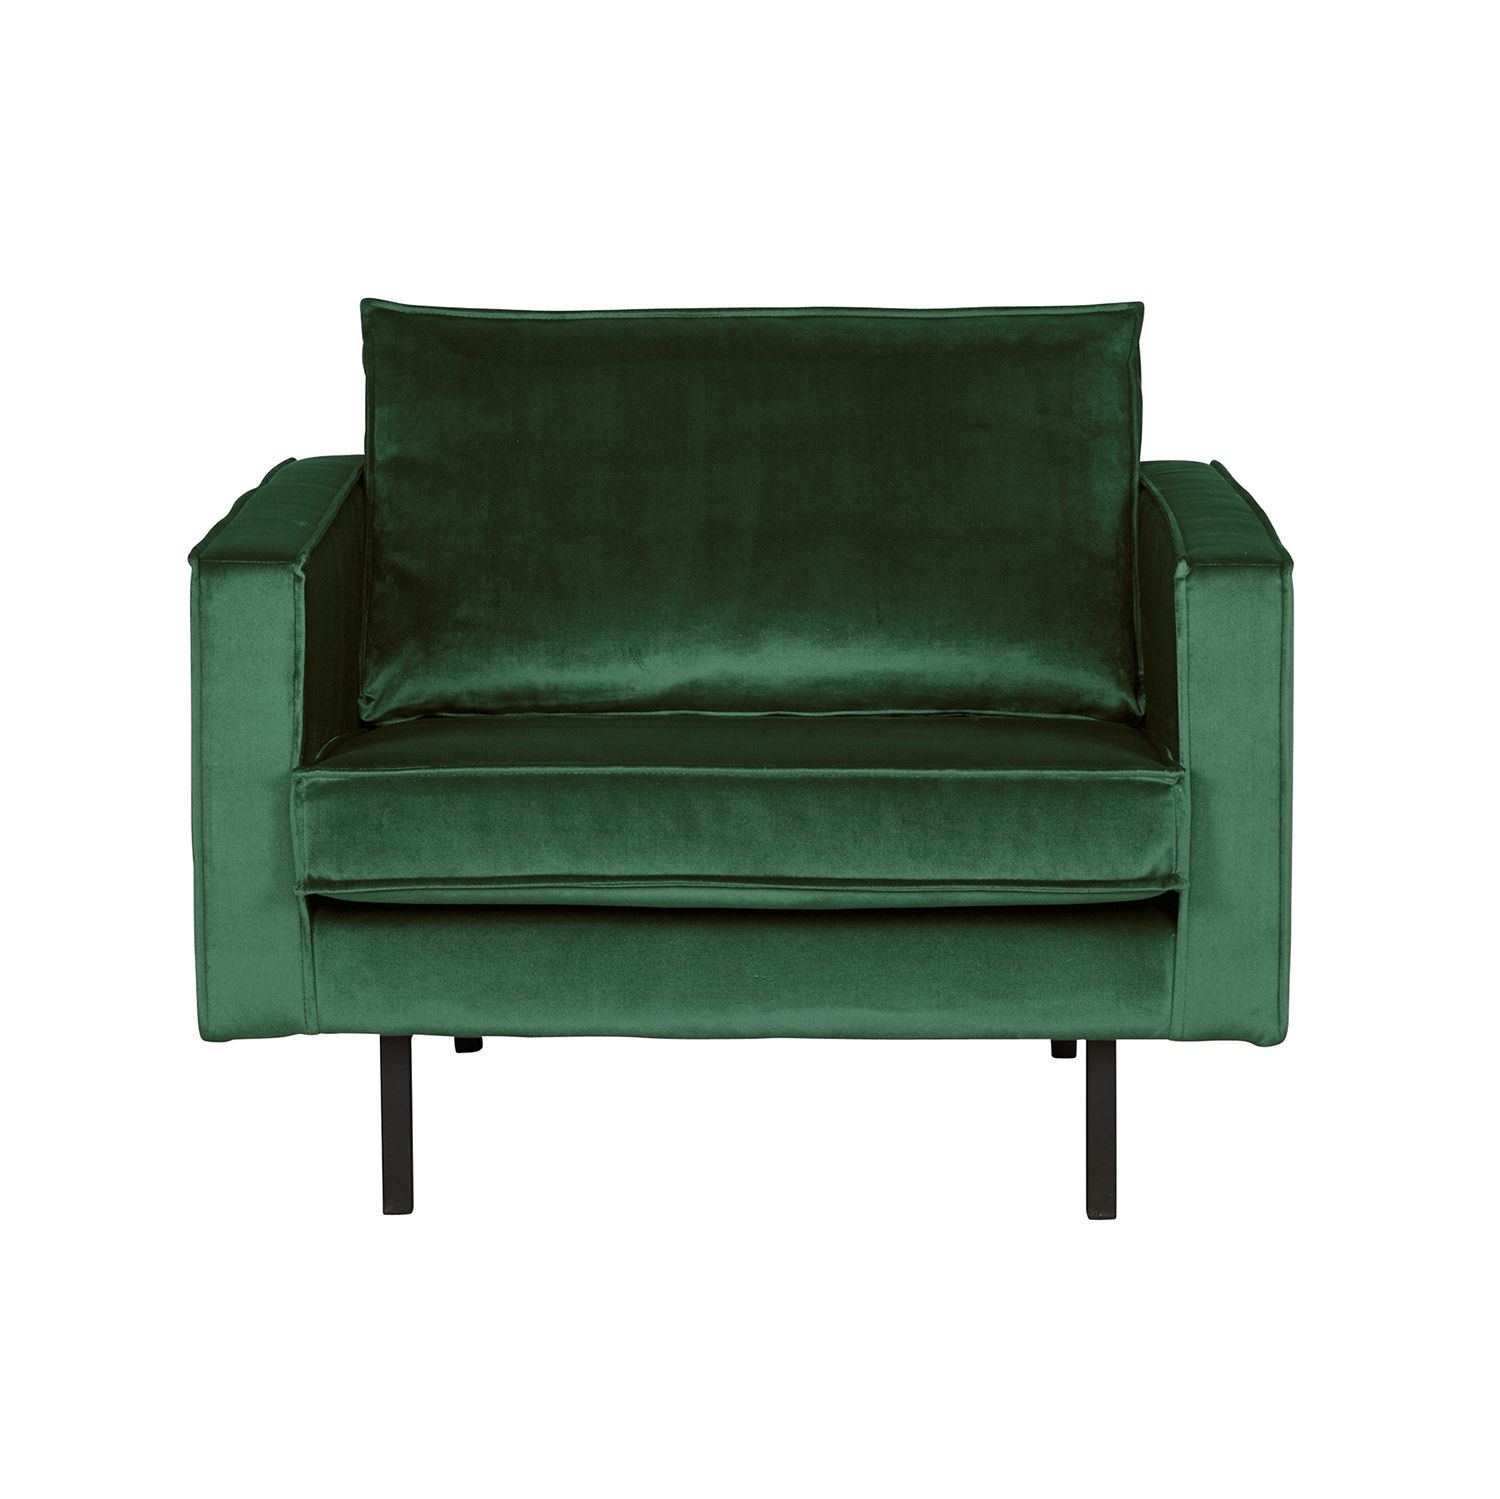 Rodeo fauteuil BePureHome velvet forest green